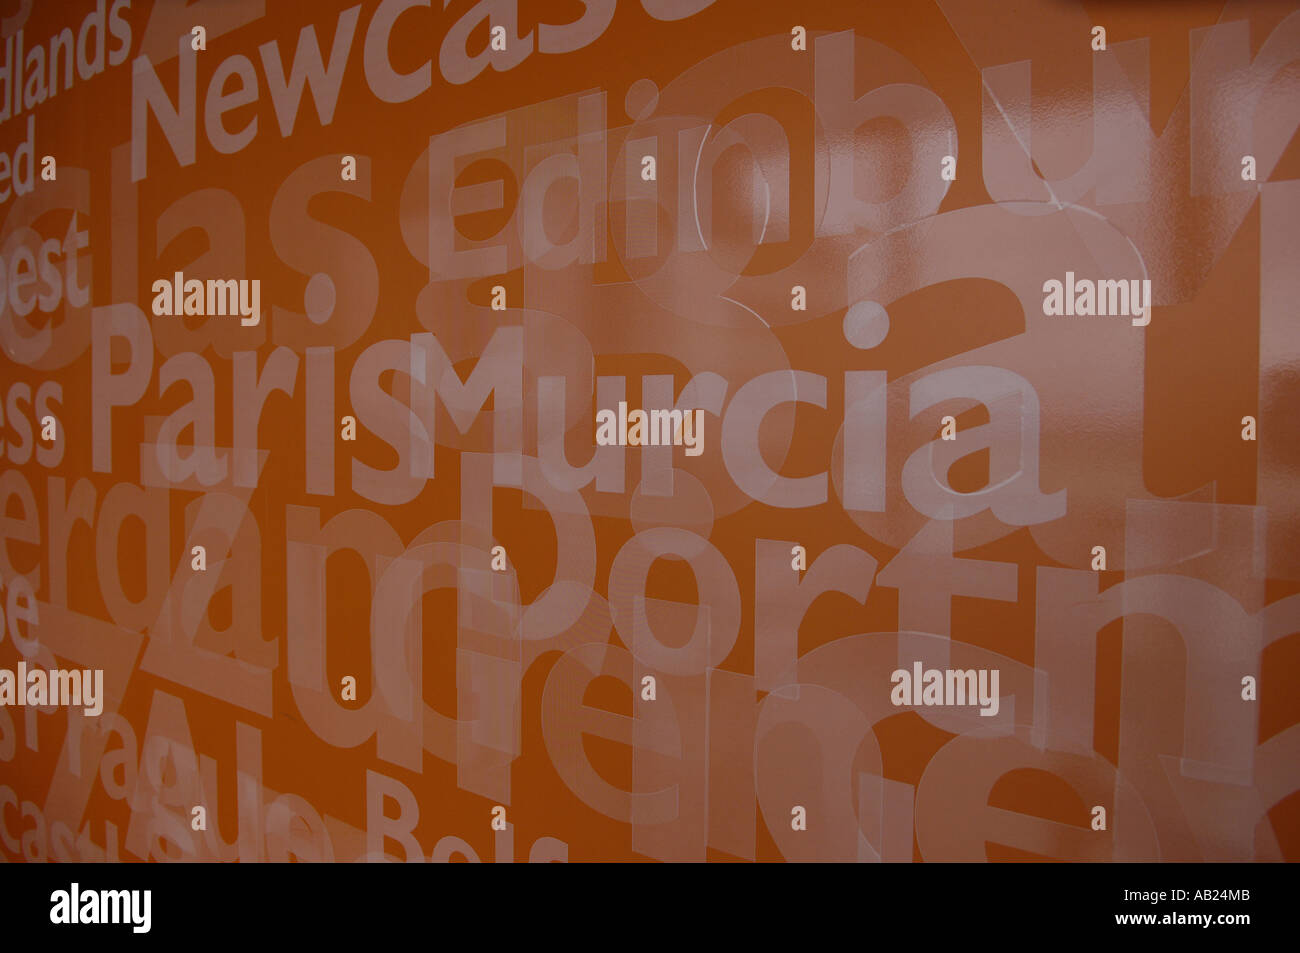 Murcia Spain Spanish Espana Orange Names Cities Destinations